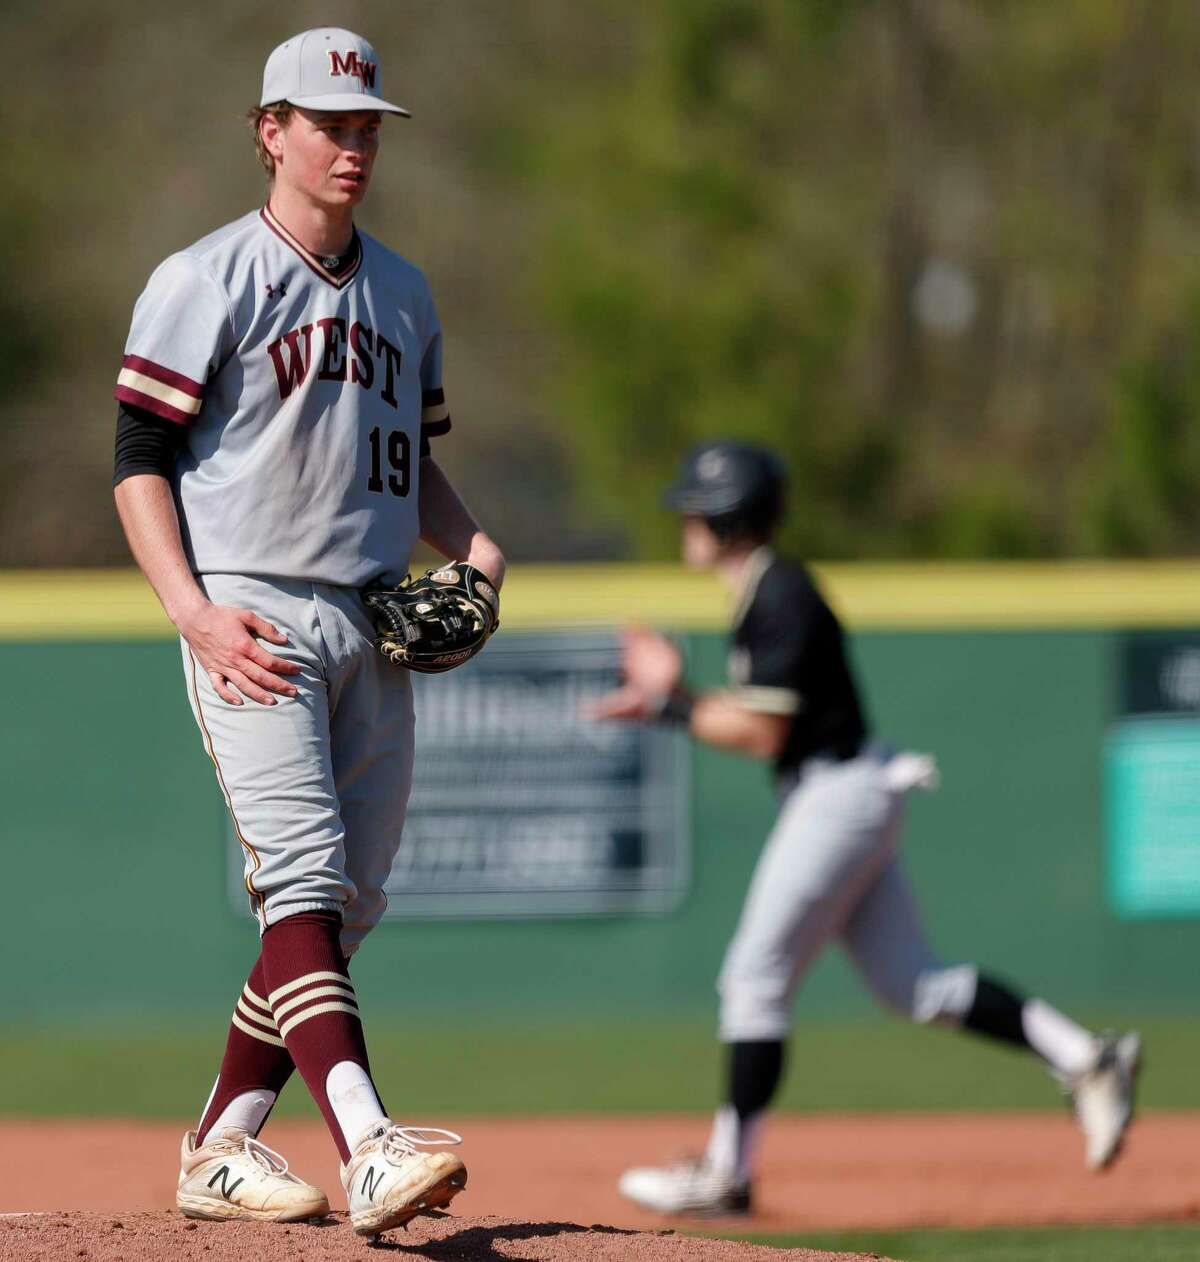 Magnolia West starting pitcher JP Ellwanger (19) is seen after walking Jake Tatom #1 of Porter bases loaded during the second inning of a high school baseball game at Porter High School, Friday, March 6, 2020, in Porter.